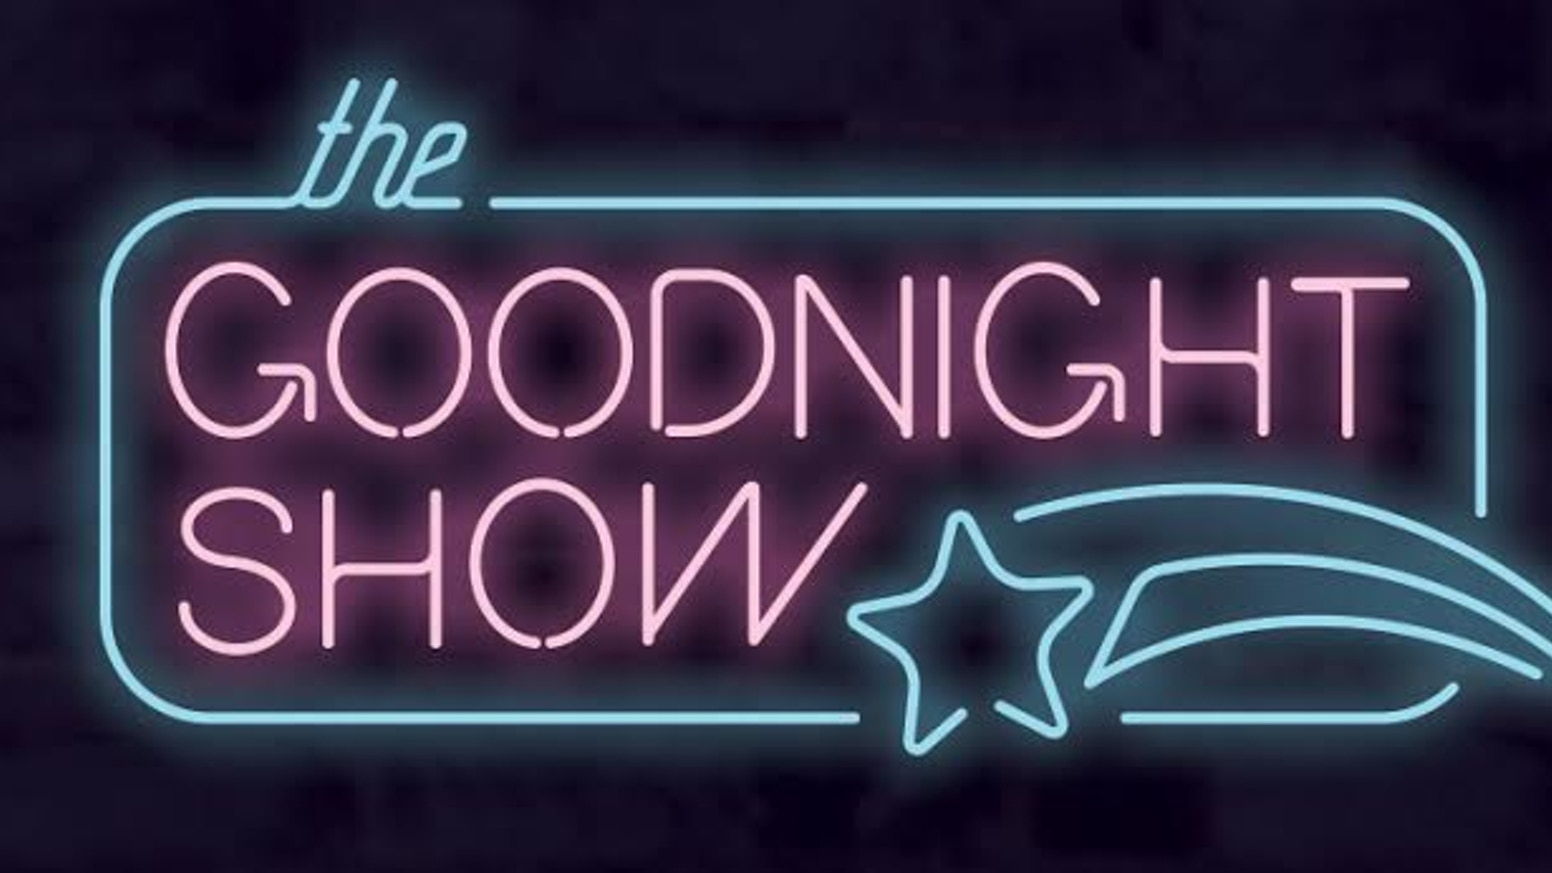 The Goodnight Show A Film By Charlie Schwan By Adrian Siordia